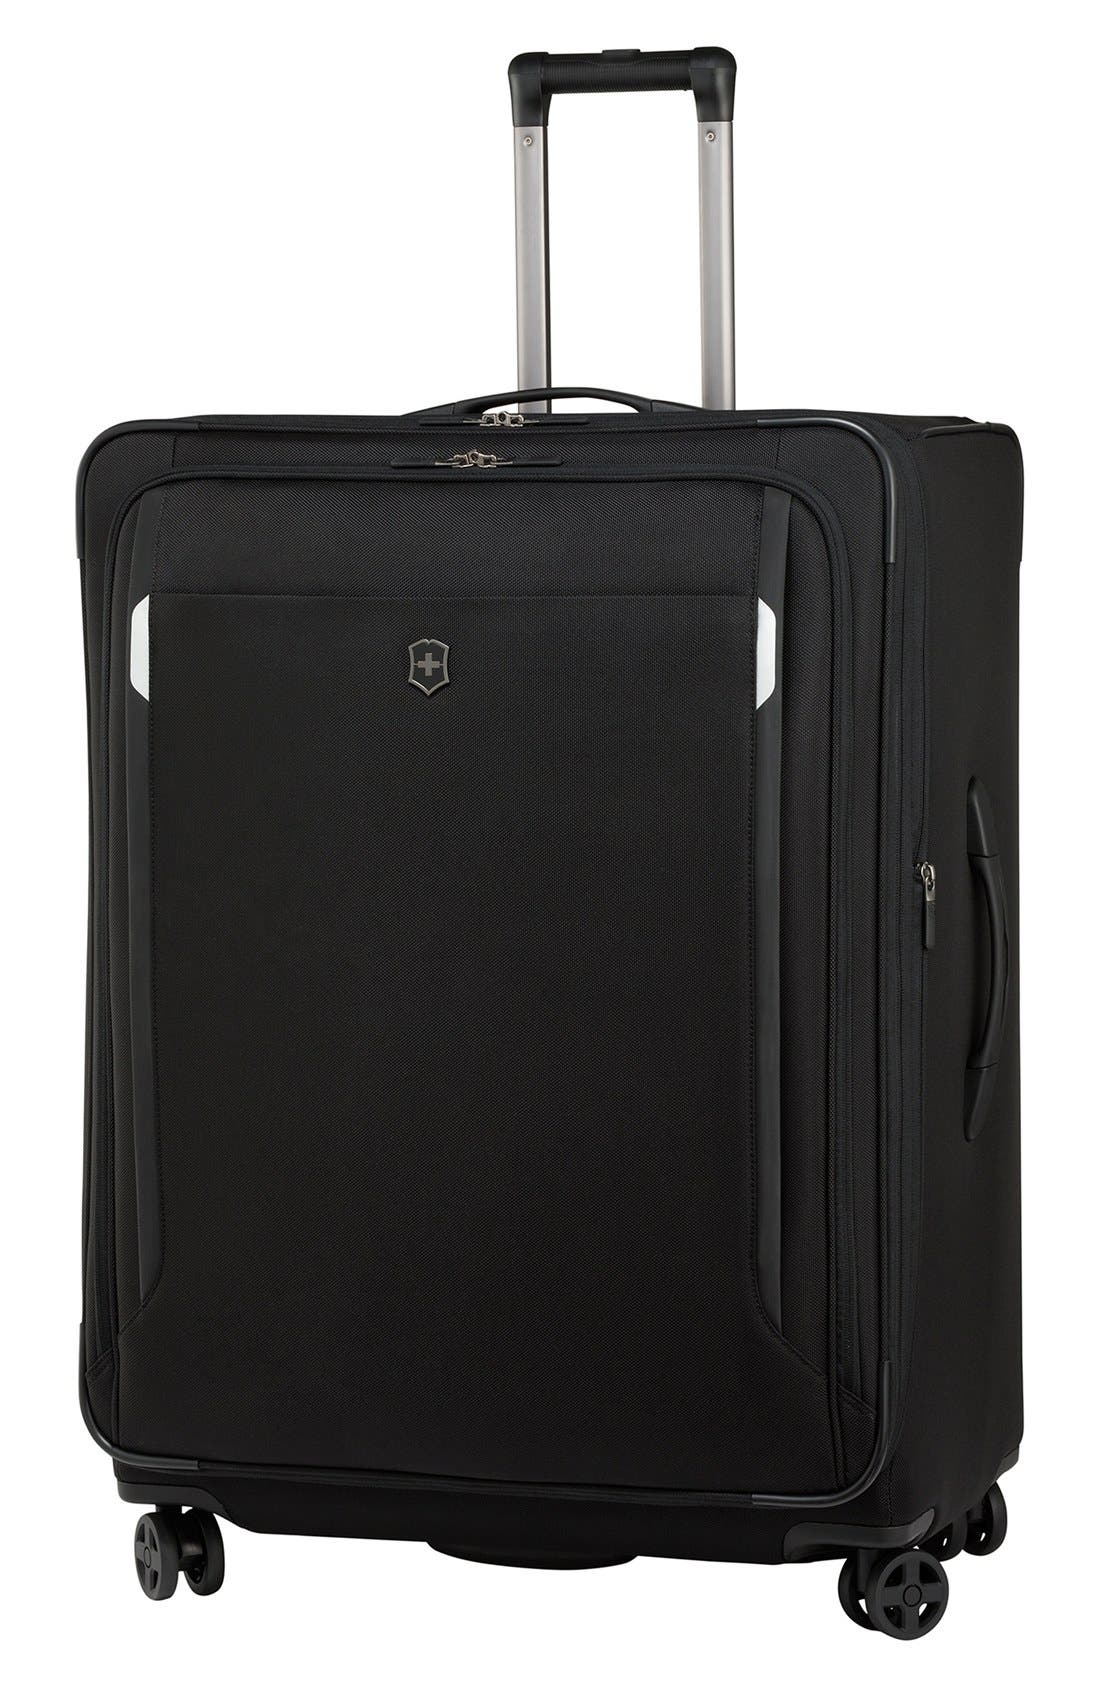 'WT 5.0' Dual Caster Wheeled Packing Case,                             Main thumbnail 1, color,                             Black